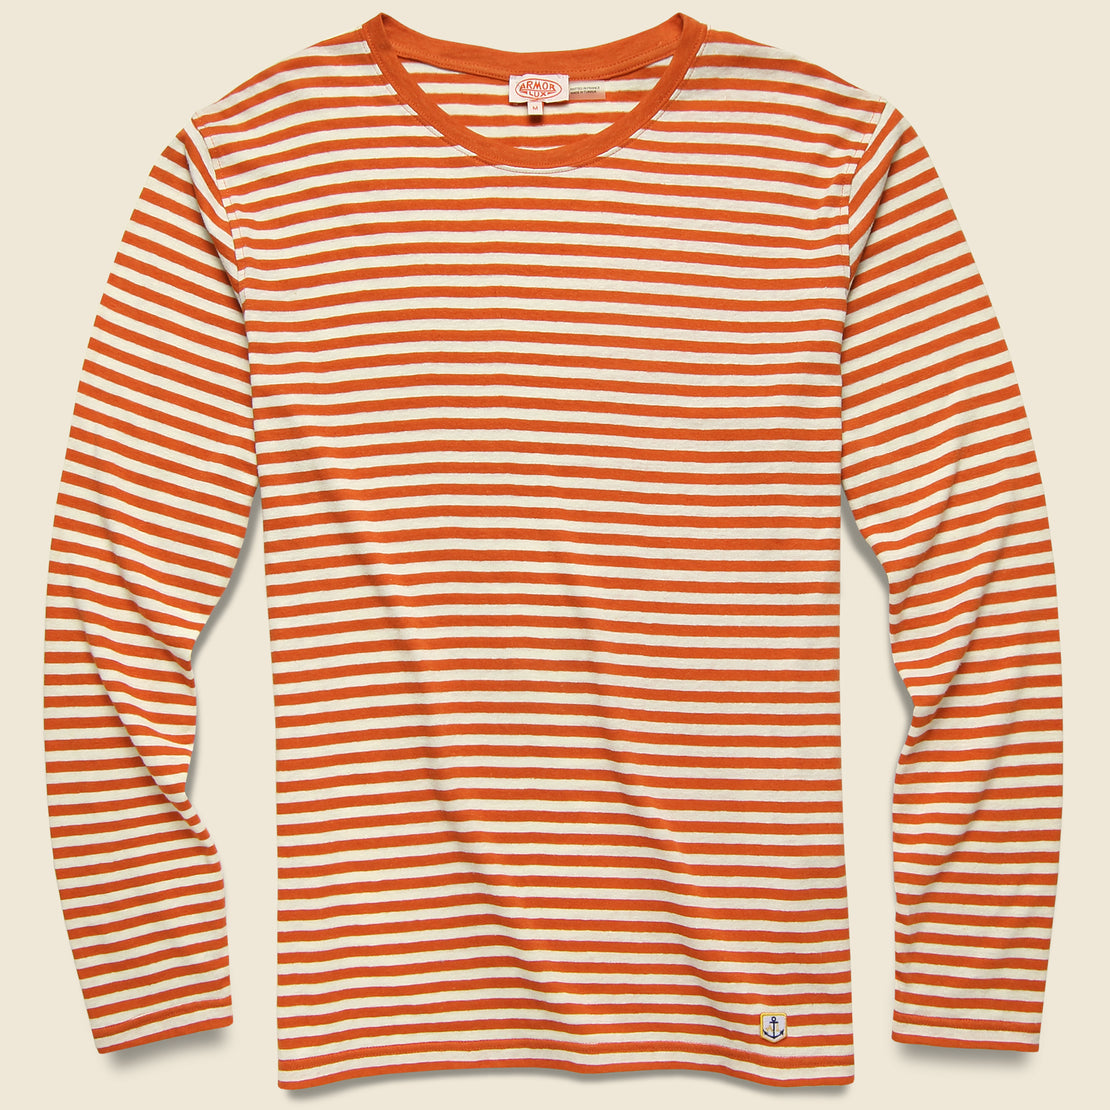 Armor Lux Breton Stripe Tee - Orange